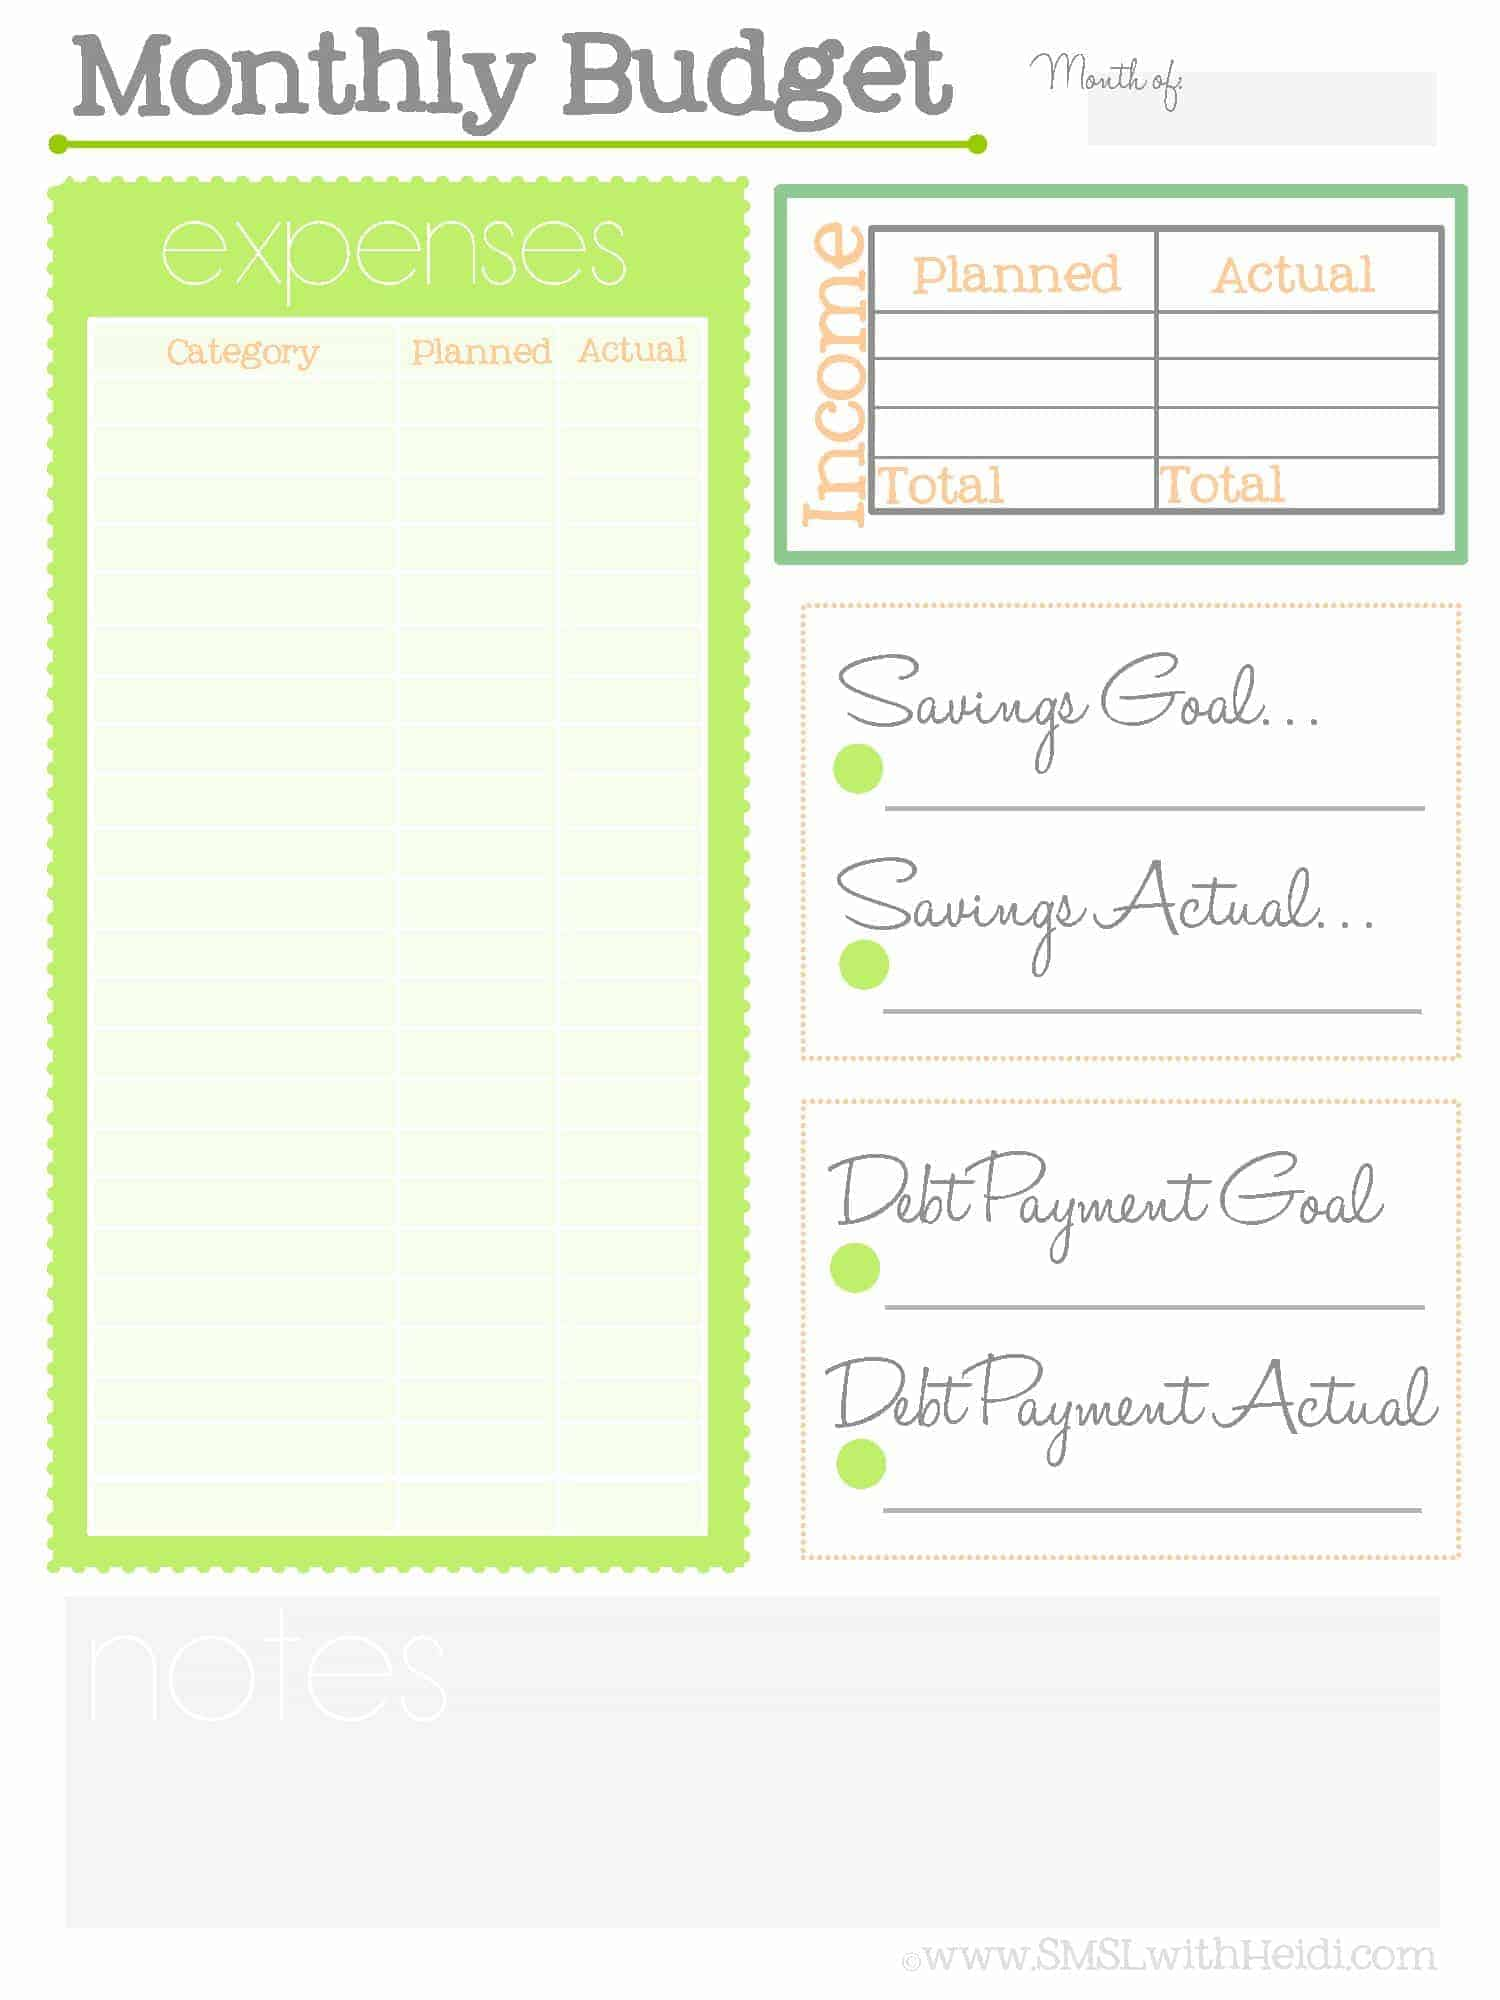 Monthly Budget Printable Sheets